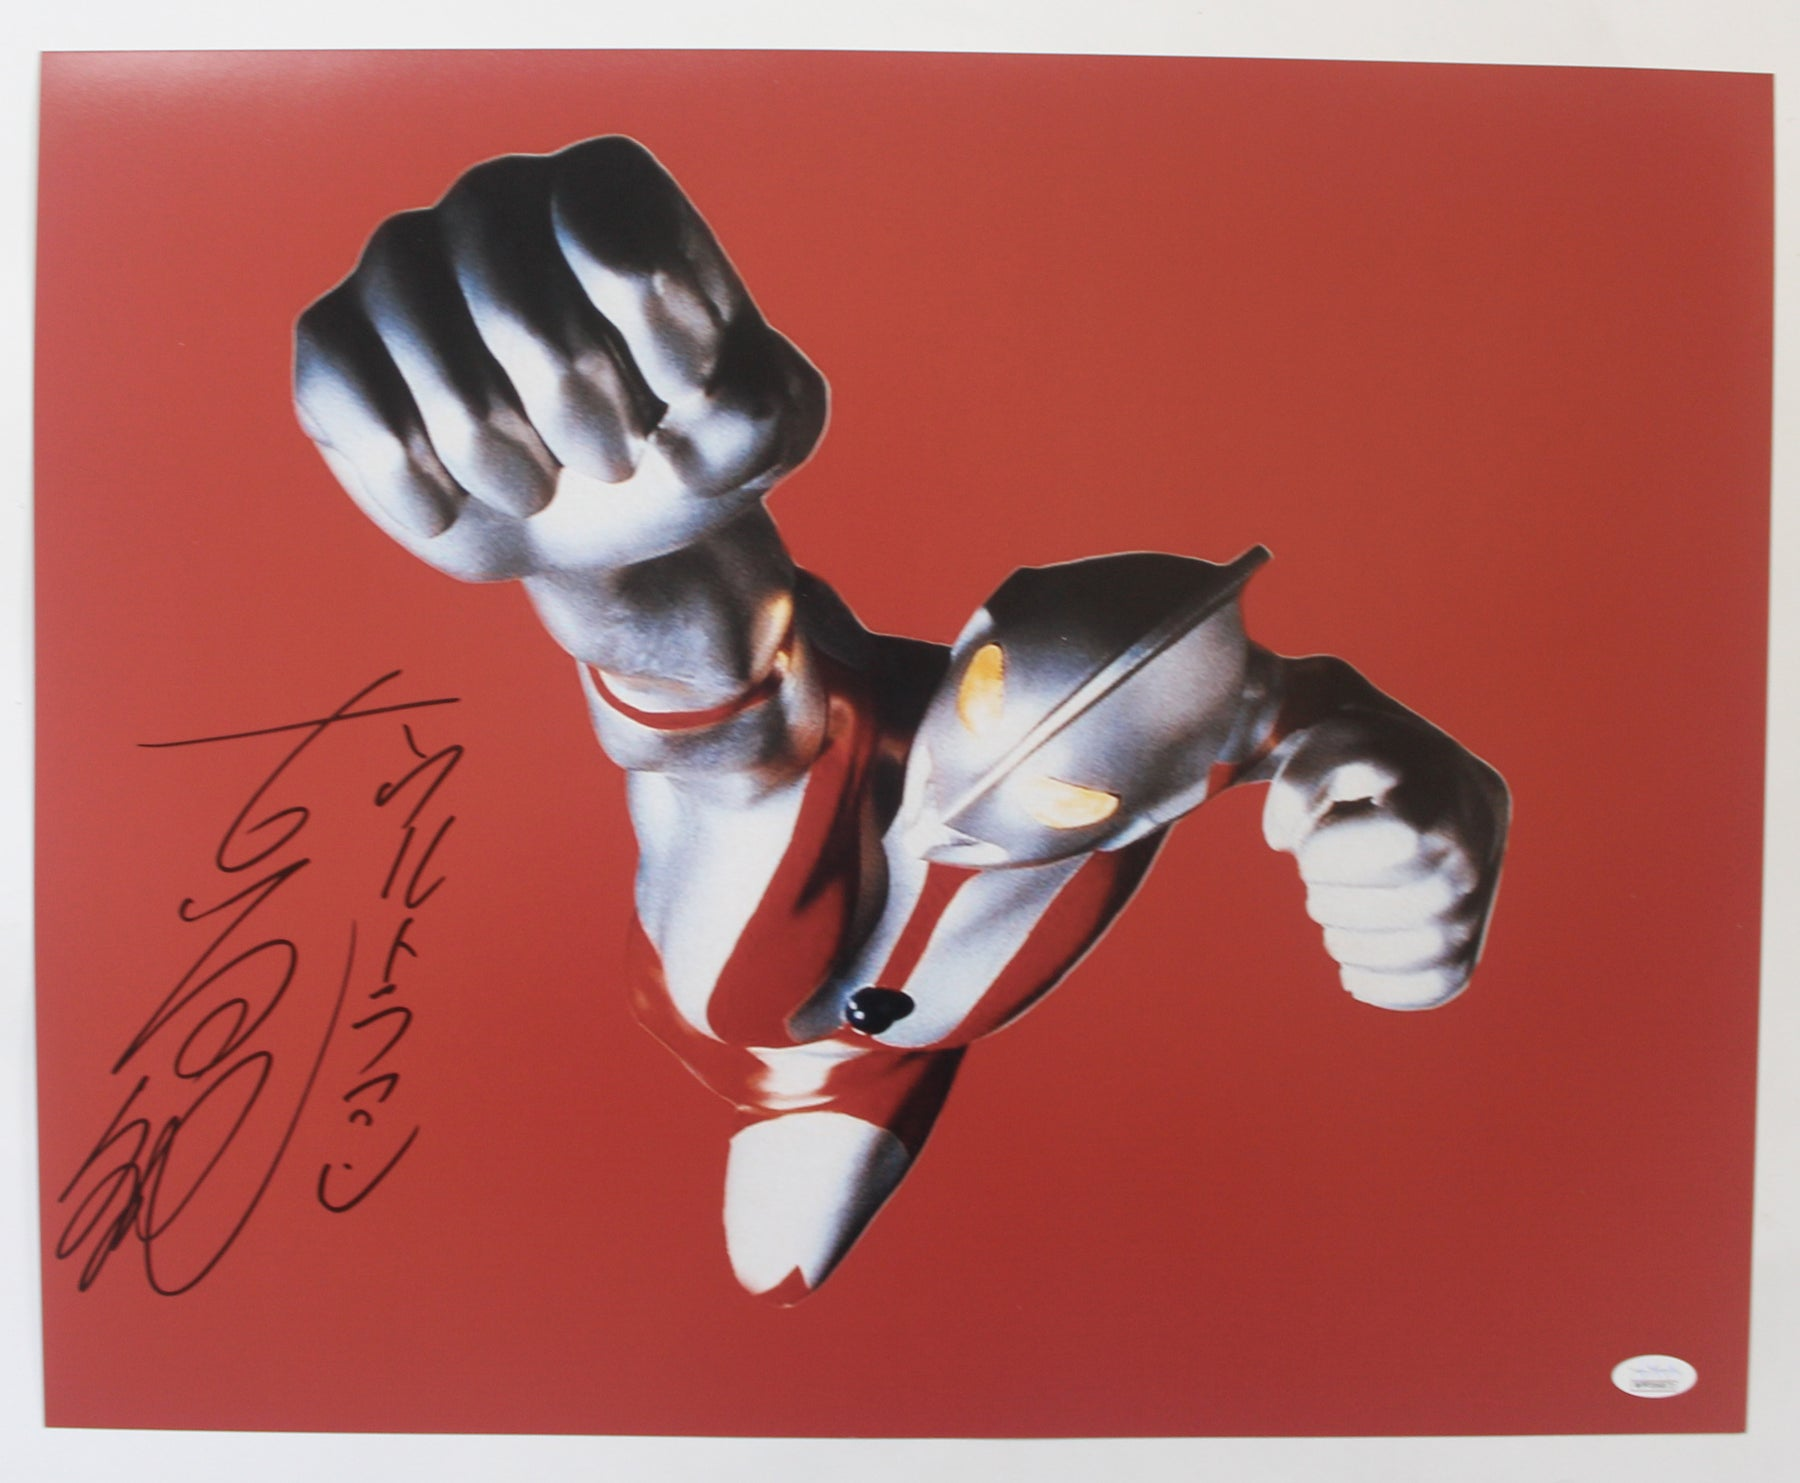 Bin Furuya Autograph 16x20 Photo Ultraman Signed JSA COA